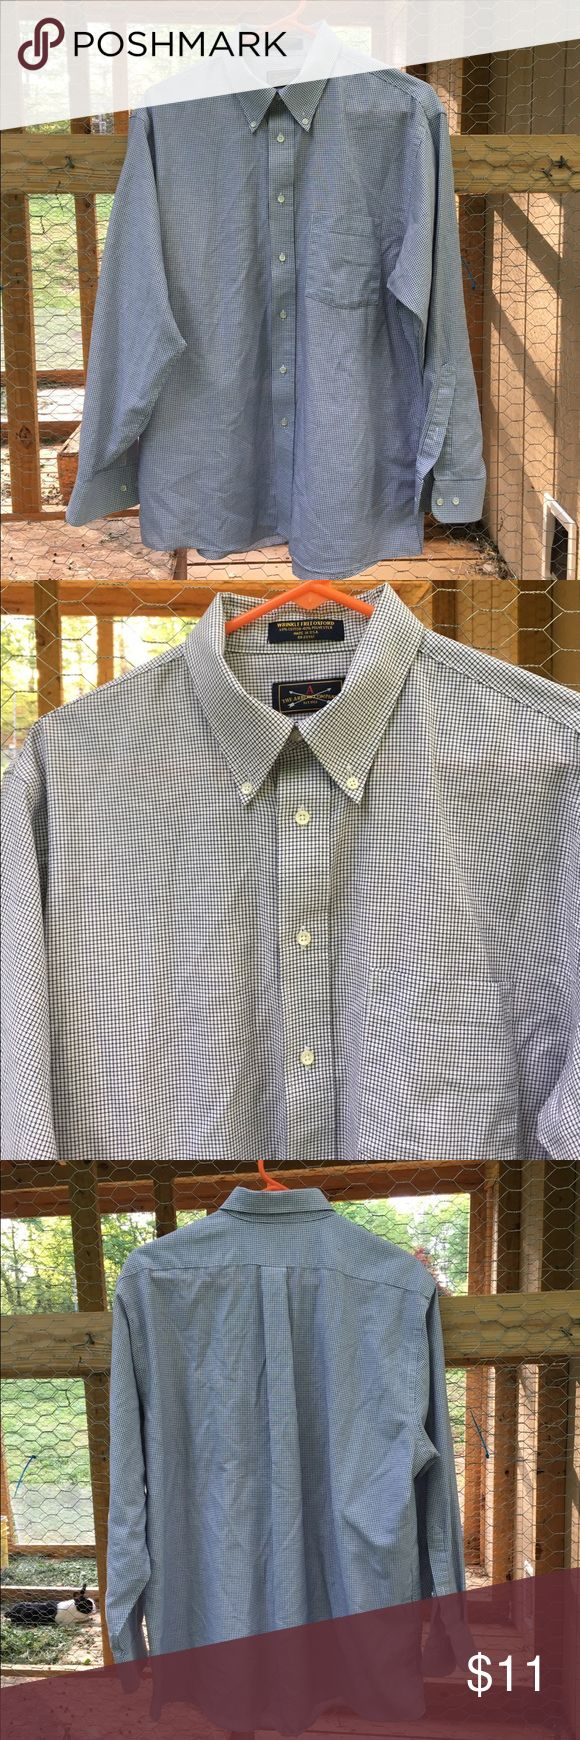 Arrow Co Wrinkle Free Oxford LS Shirt 16.5 32/33 The Arrow Company men's Wrinkle Free oxford blue and white long sleeve checked button up dress shirt is size 16.5 32/33. Shirt has a buttoned down pointed collar and a pocket on front. Made in USA of 60% cotton 40% polyester. Arrow Shirts Dress Shirts